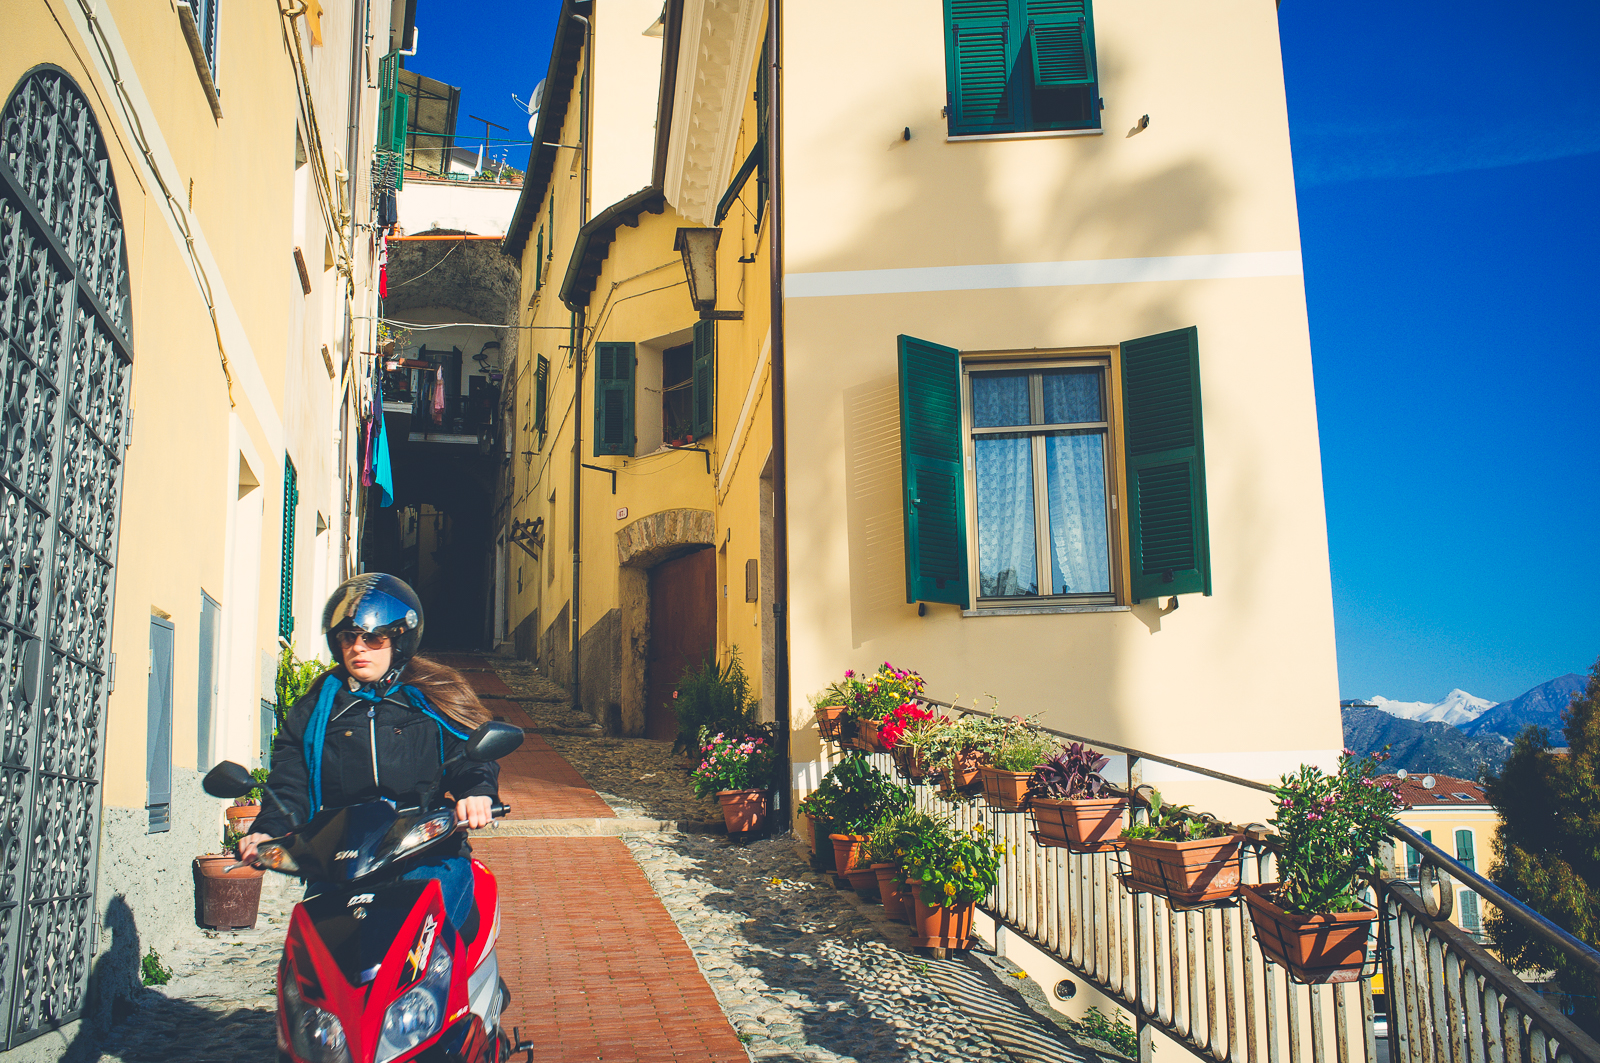 On the way down from Ventimiglia Alta